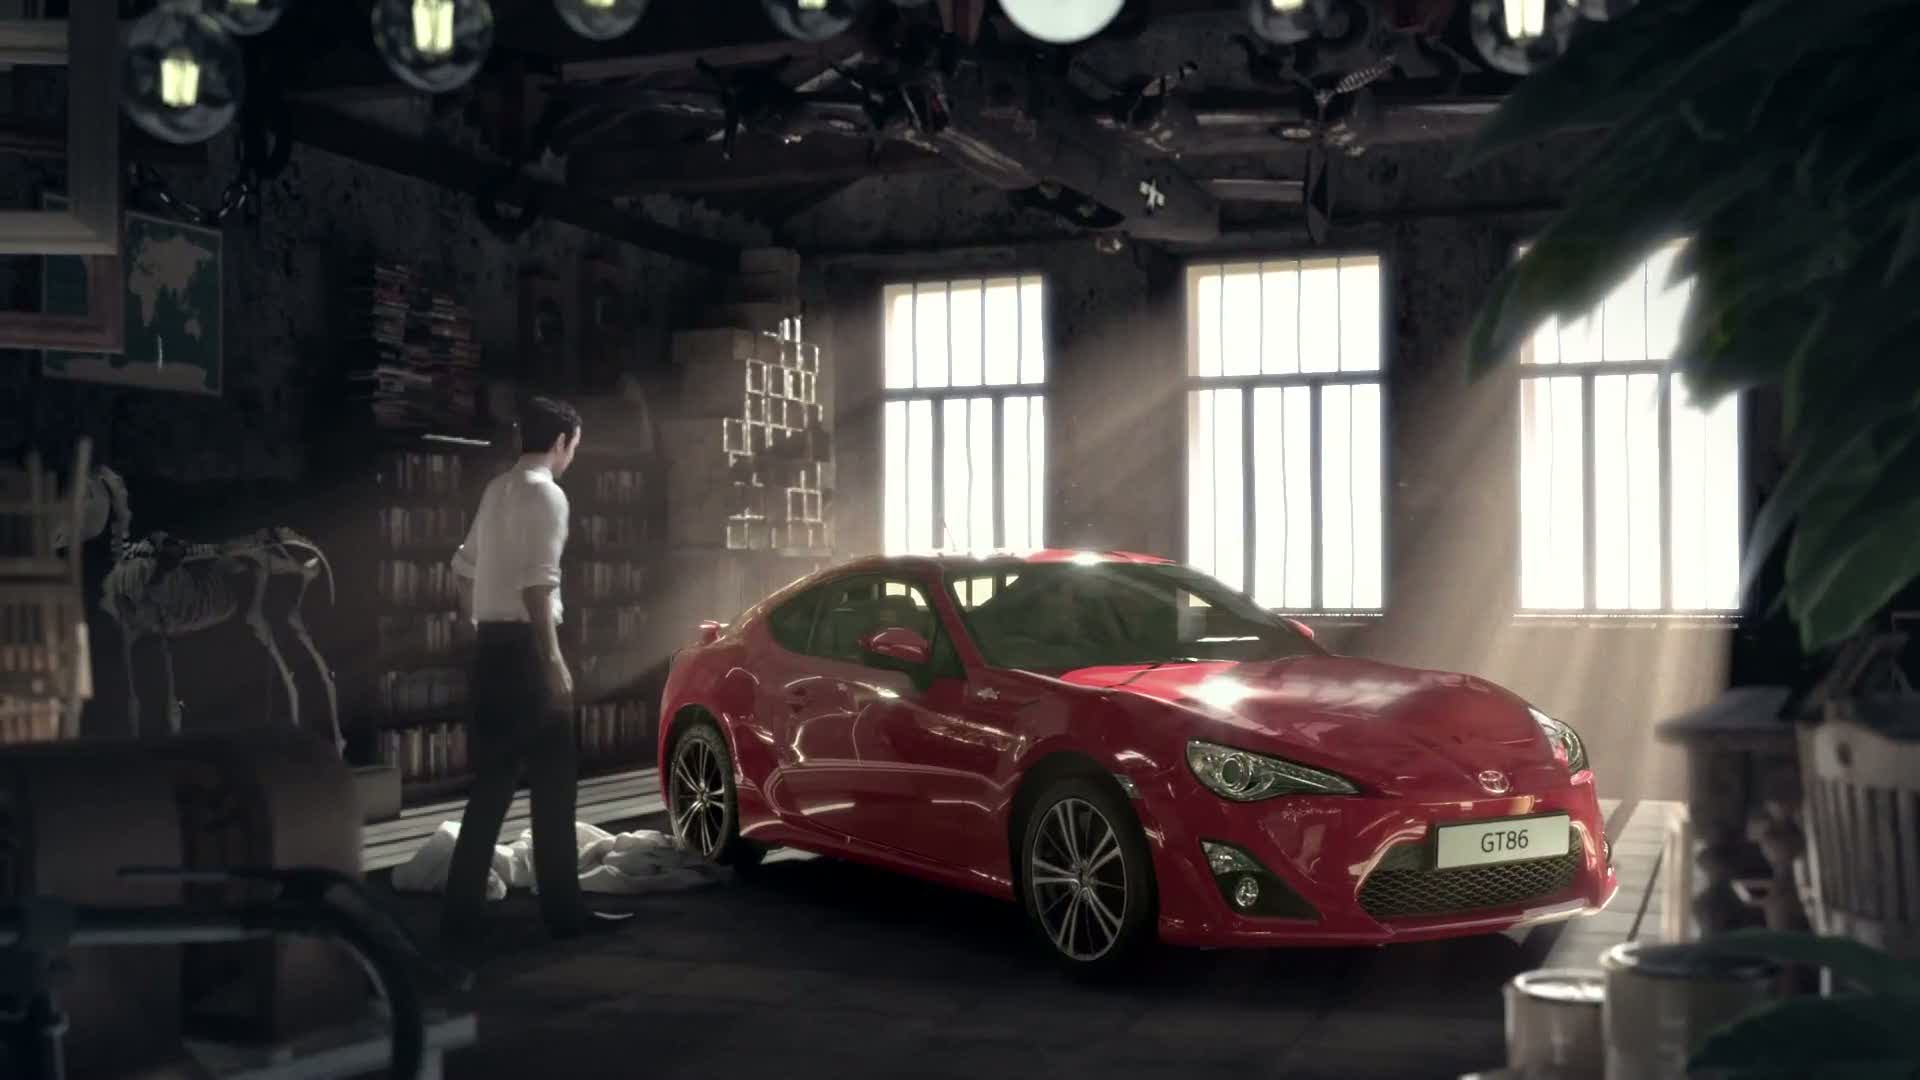 Widescreen Anime Girl Wallpaper Toyota Gt 86 Wallpapers High Quality Download Free